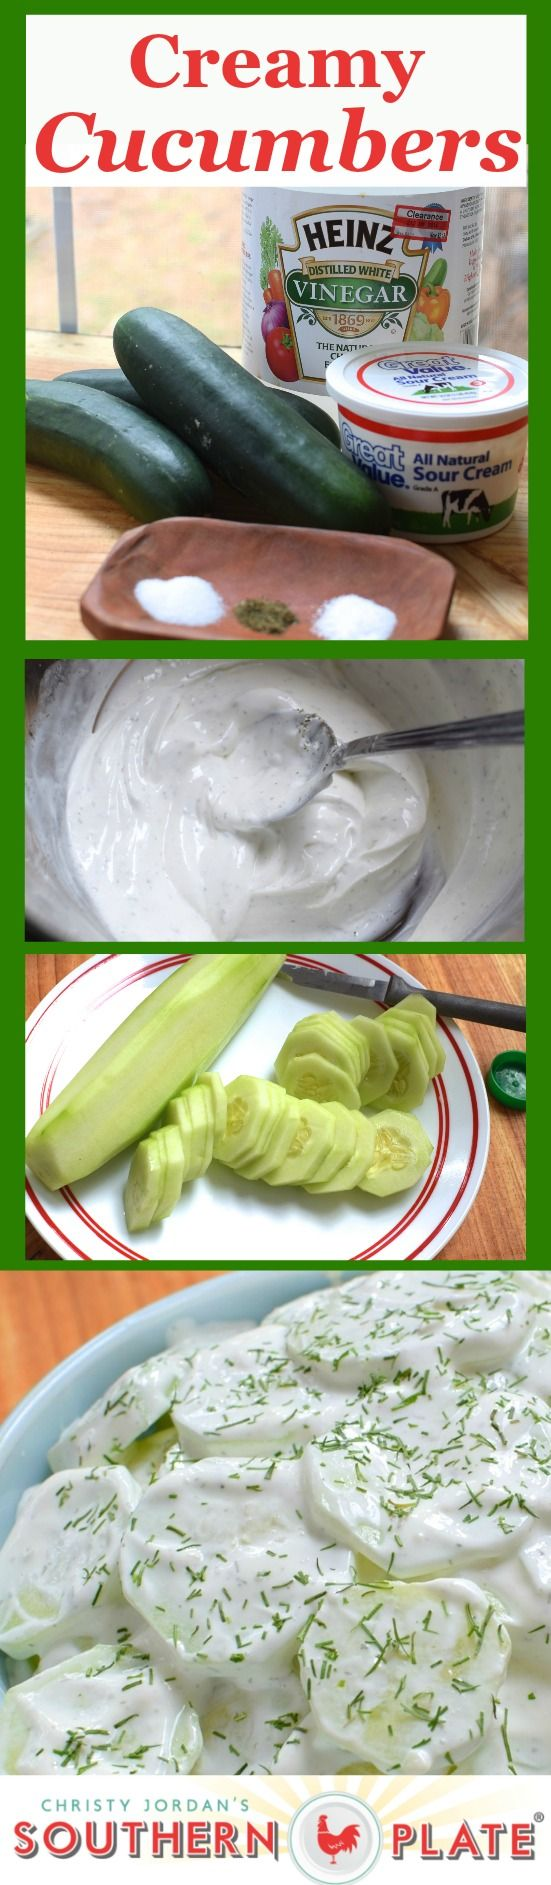 Recipe for Fresh Cucumbers in a Light Sour Cream Dressing - Absolutely Delicious! http://www.southernplate.com